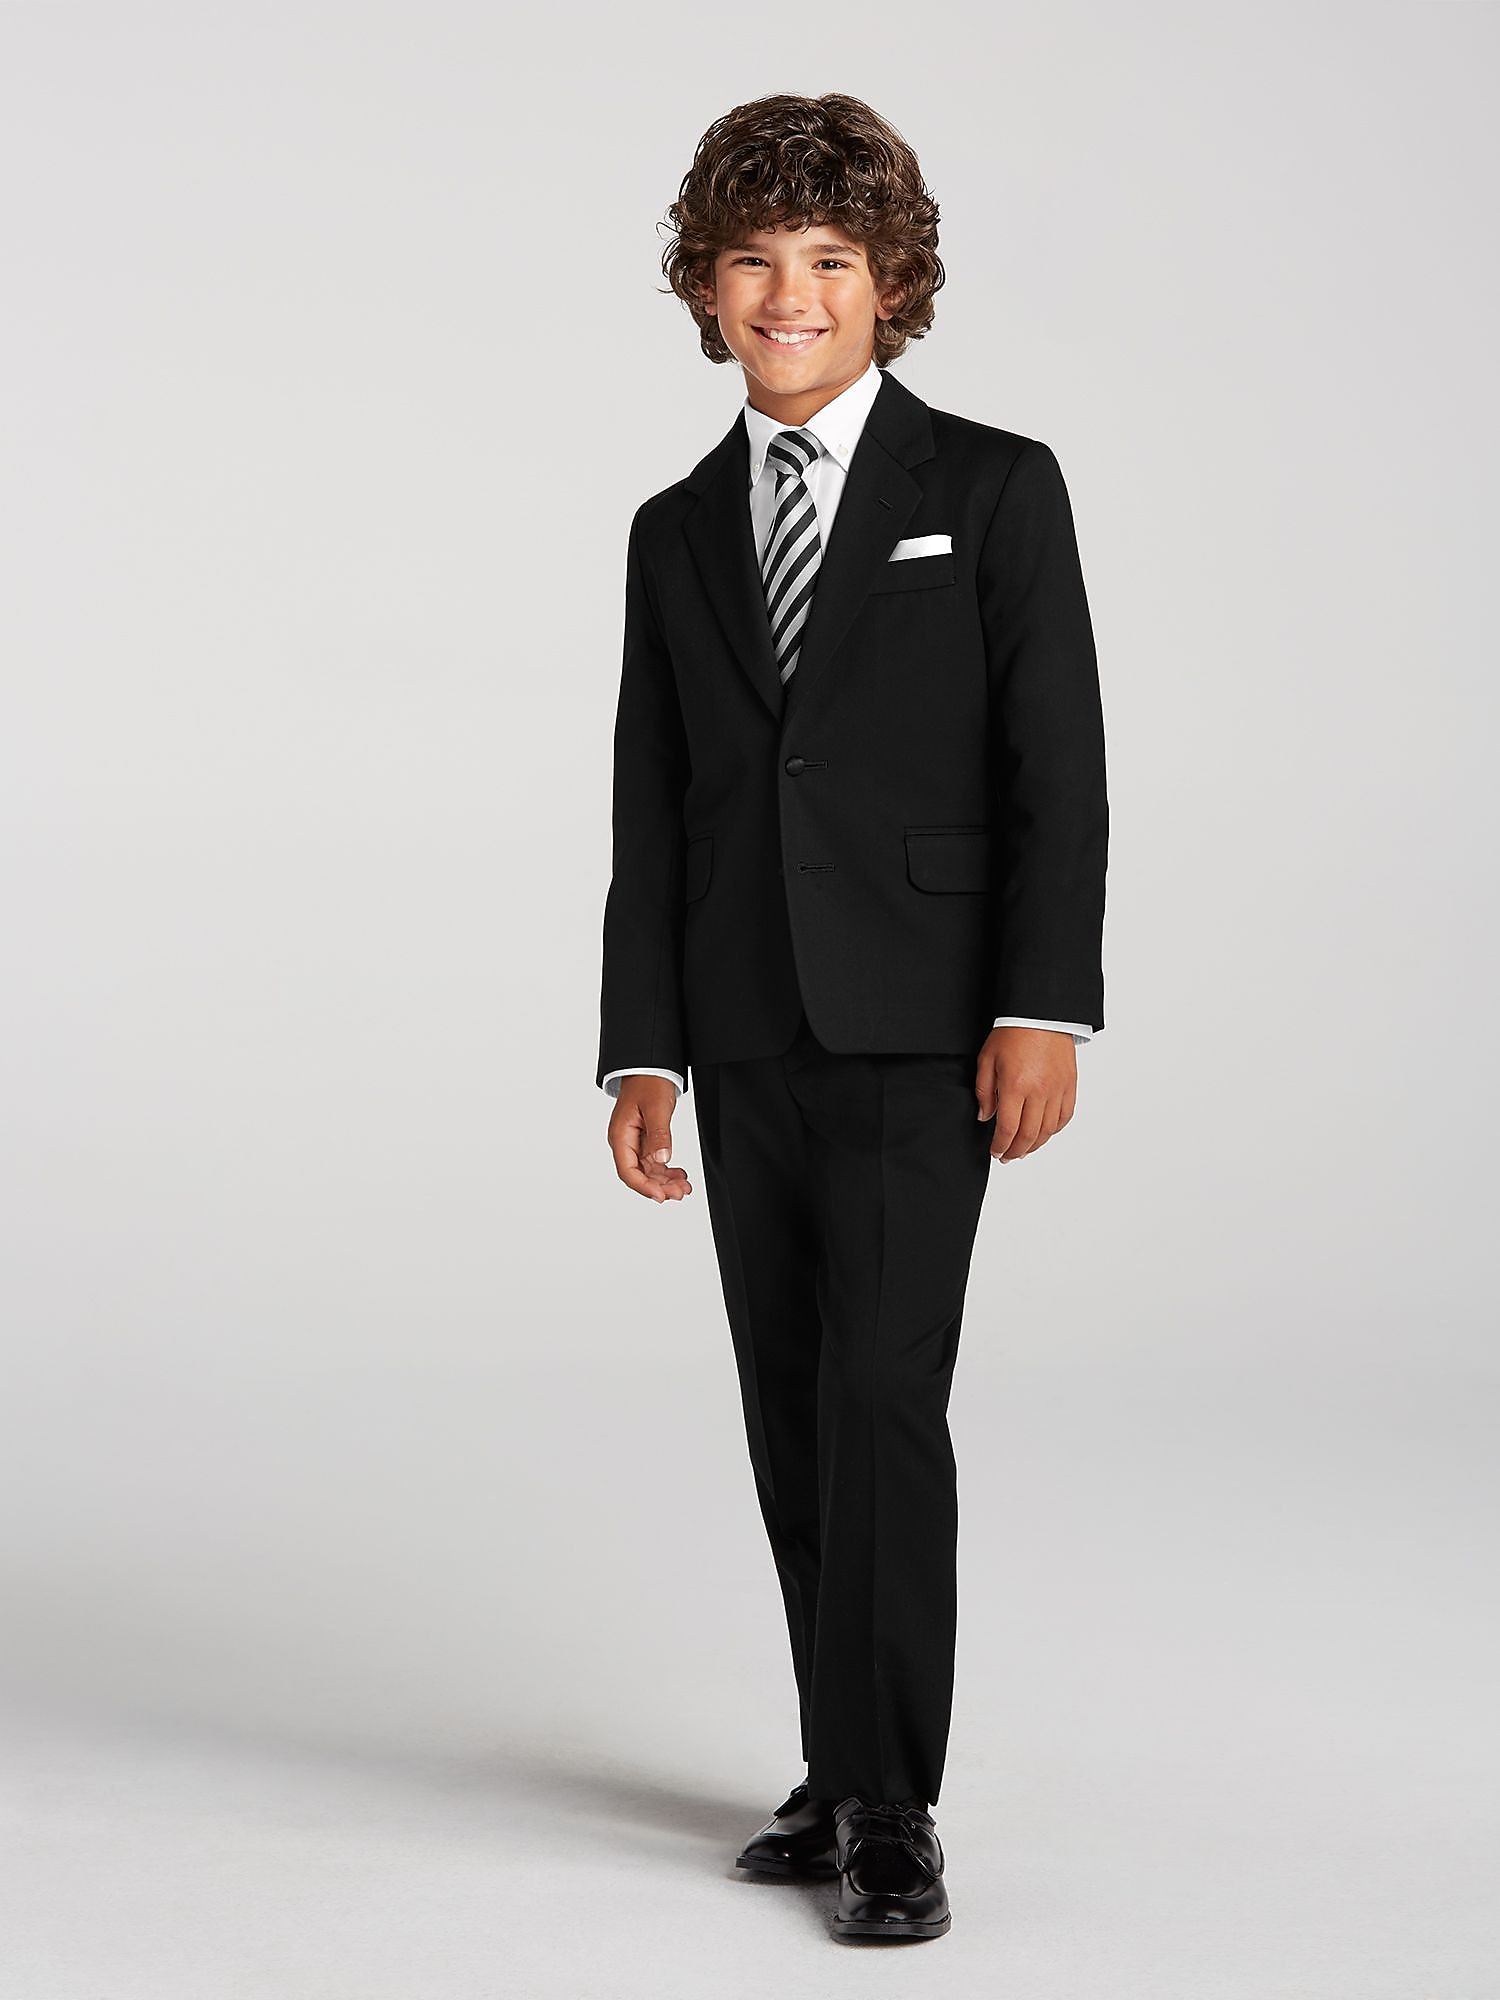 Boys' Suits: Free Shipping on orders over $45 at coolmfilehj.cf - Your Online Boys' Clothing Store! Overstock uses cookies to ensure you get the best experience on our site. If you continue on our site, you consent to the use of such cookies. Boys Suit Red Black Satin Notch Lapel 5 Pieces Ticket Pocket Suits. Quick View.